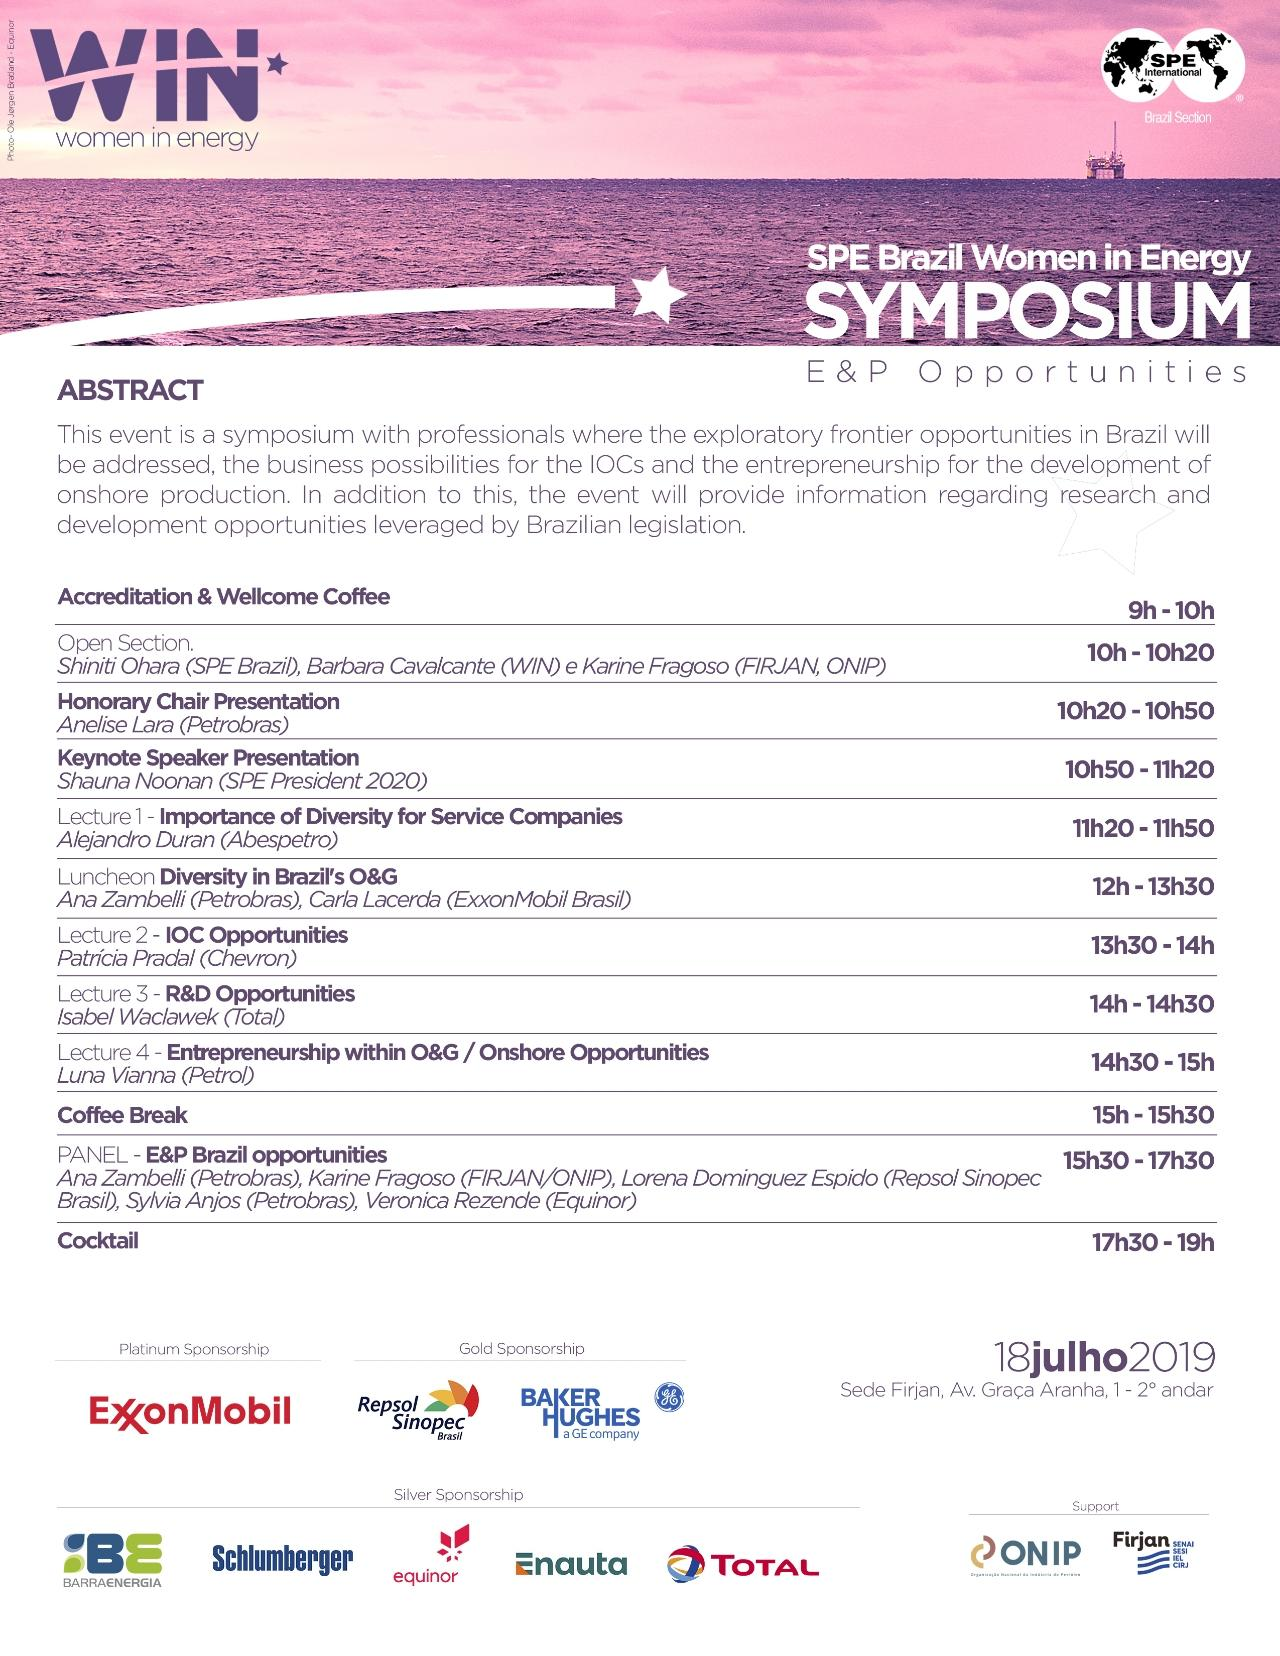 SPE Brazil Women in Energy Symposium: E&P Opportunities